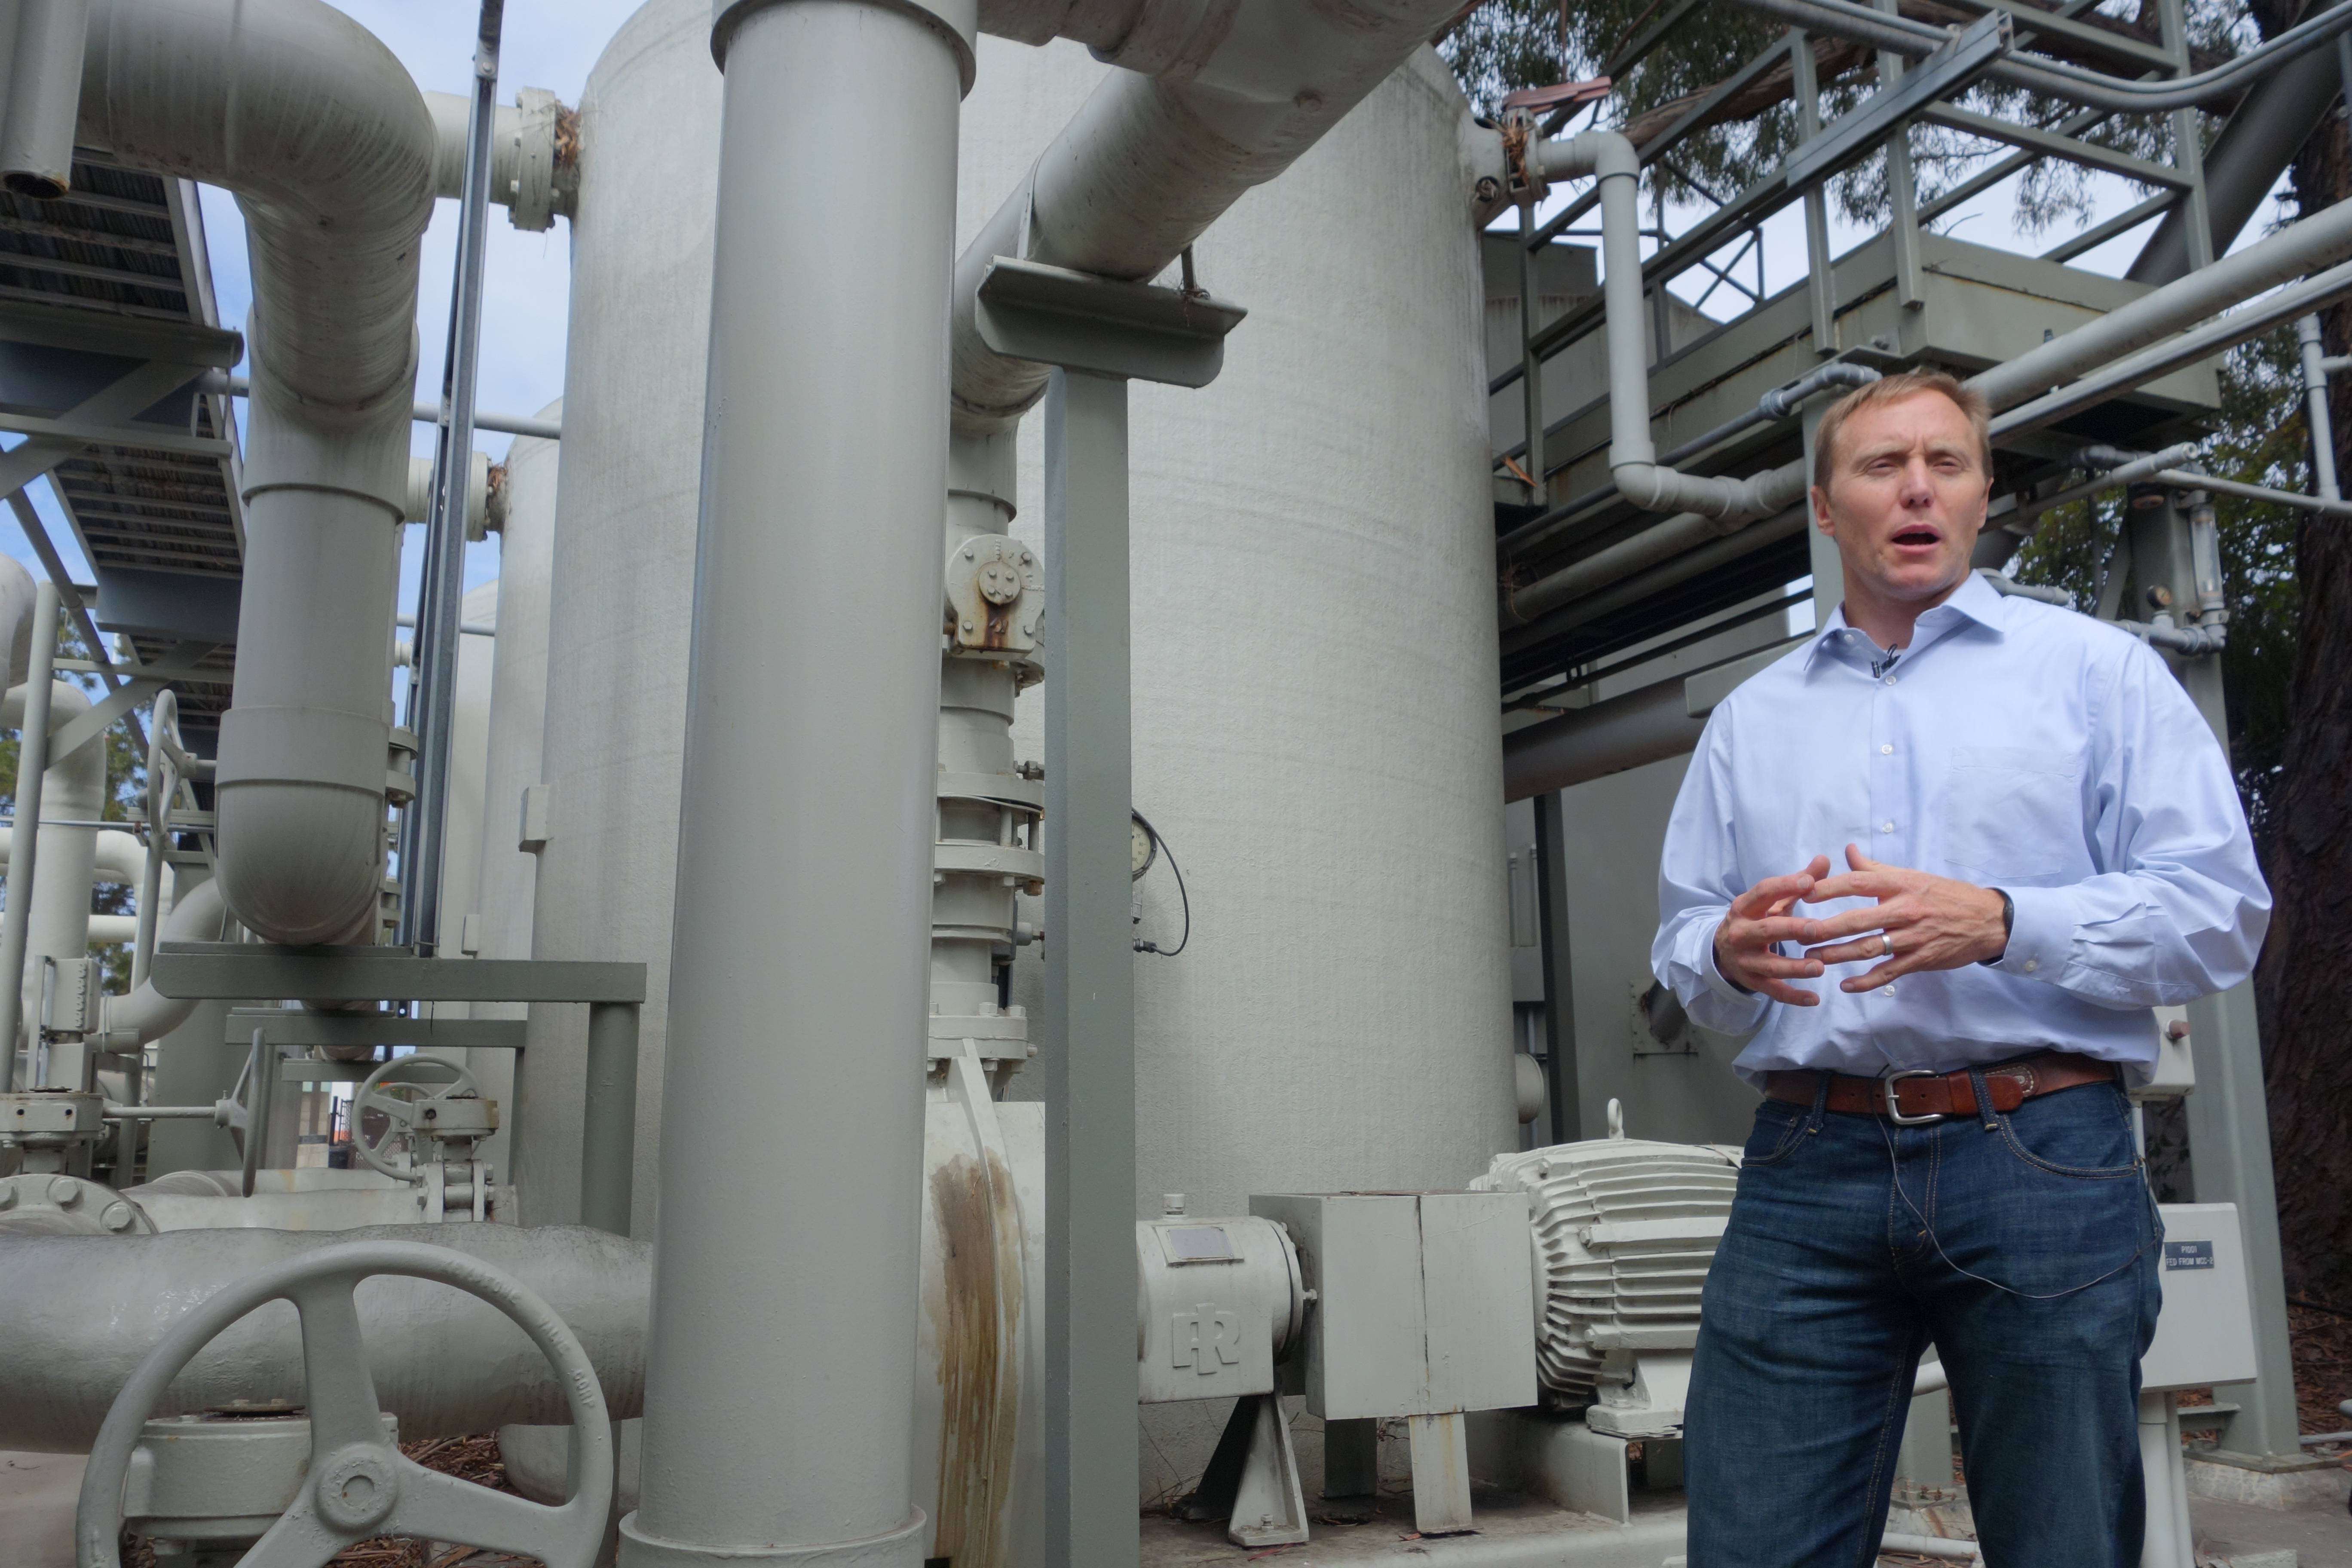 Joshua Haggmark, interim resources manager for Santa Barbara, Calif., stands next to a desalination plant, which removes salt from ocean water, in Santa Barbara, Calif.  The city is considering restarting the plant as California withers in a drought.